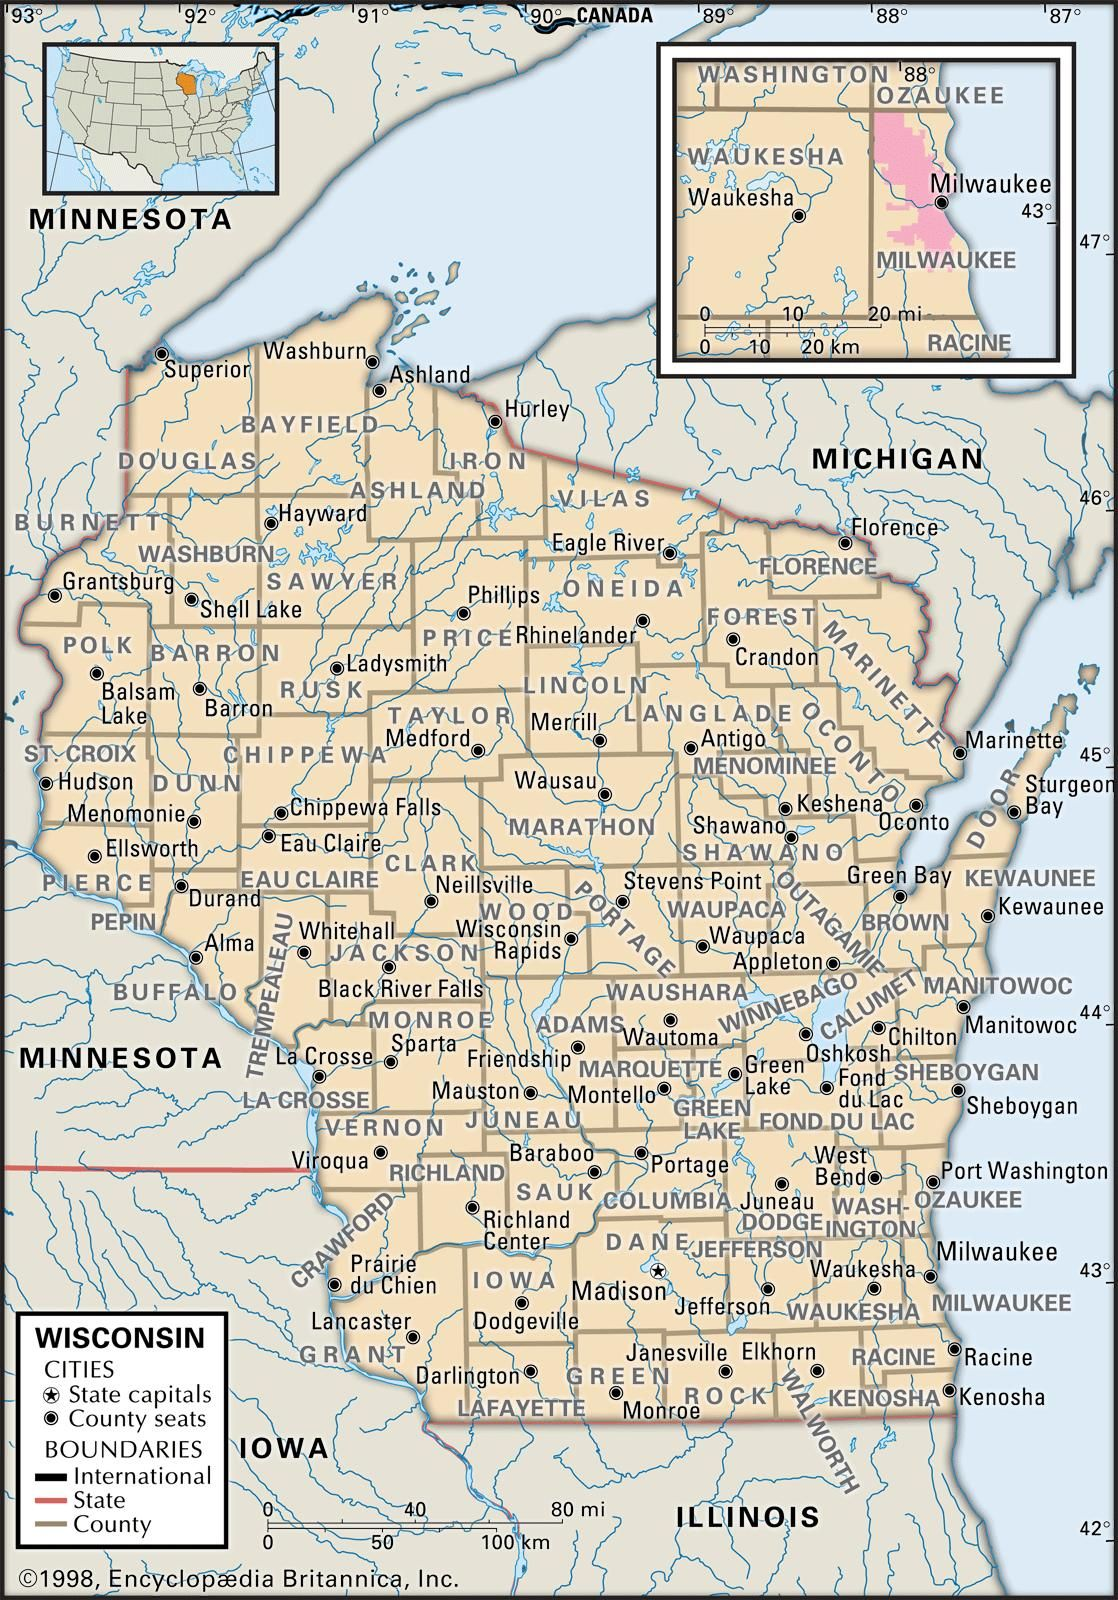 Map of Wisconsin Counties including interactive map of counties and